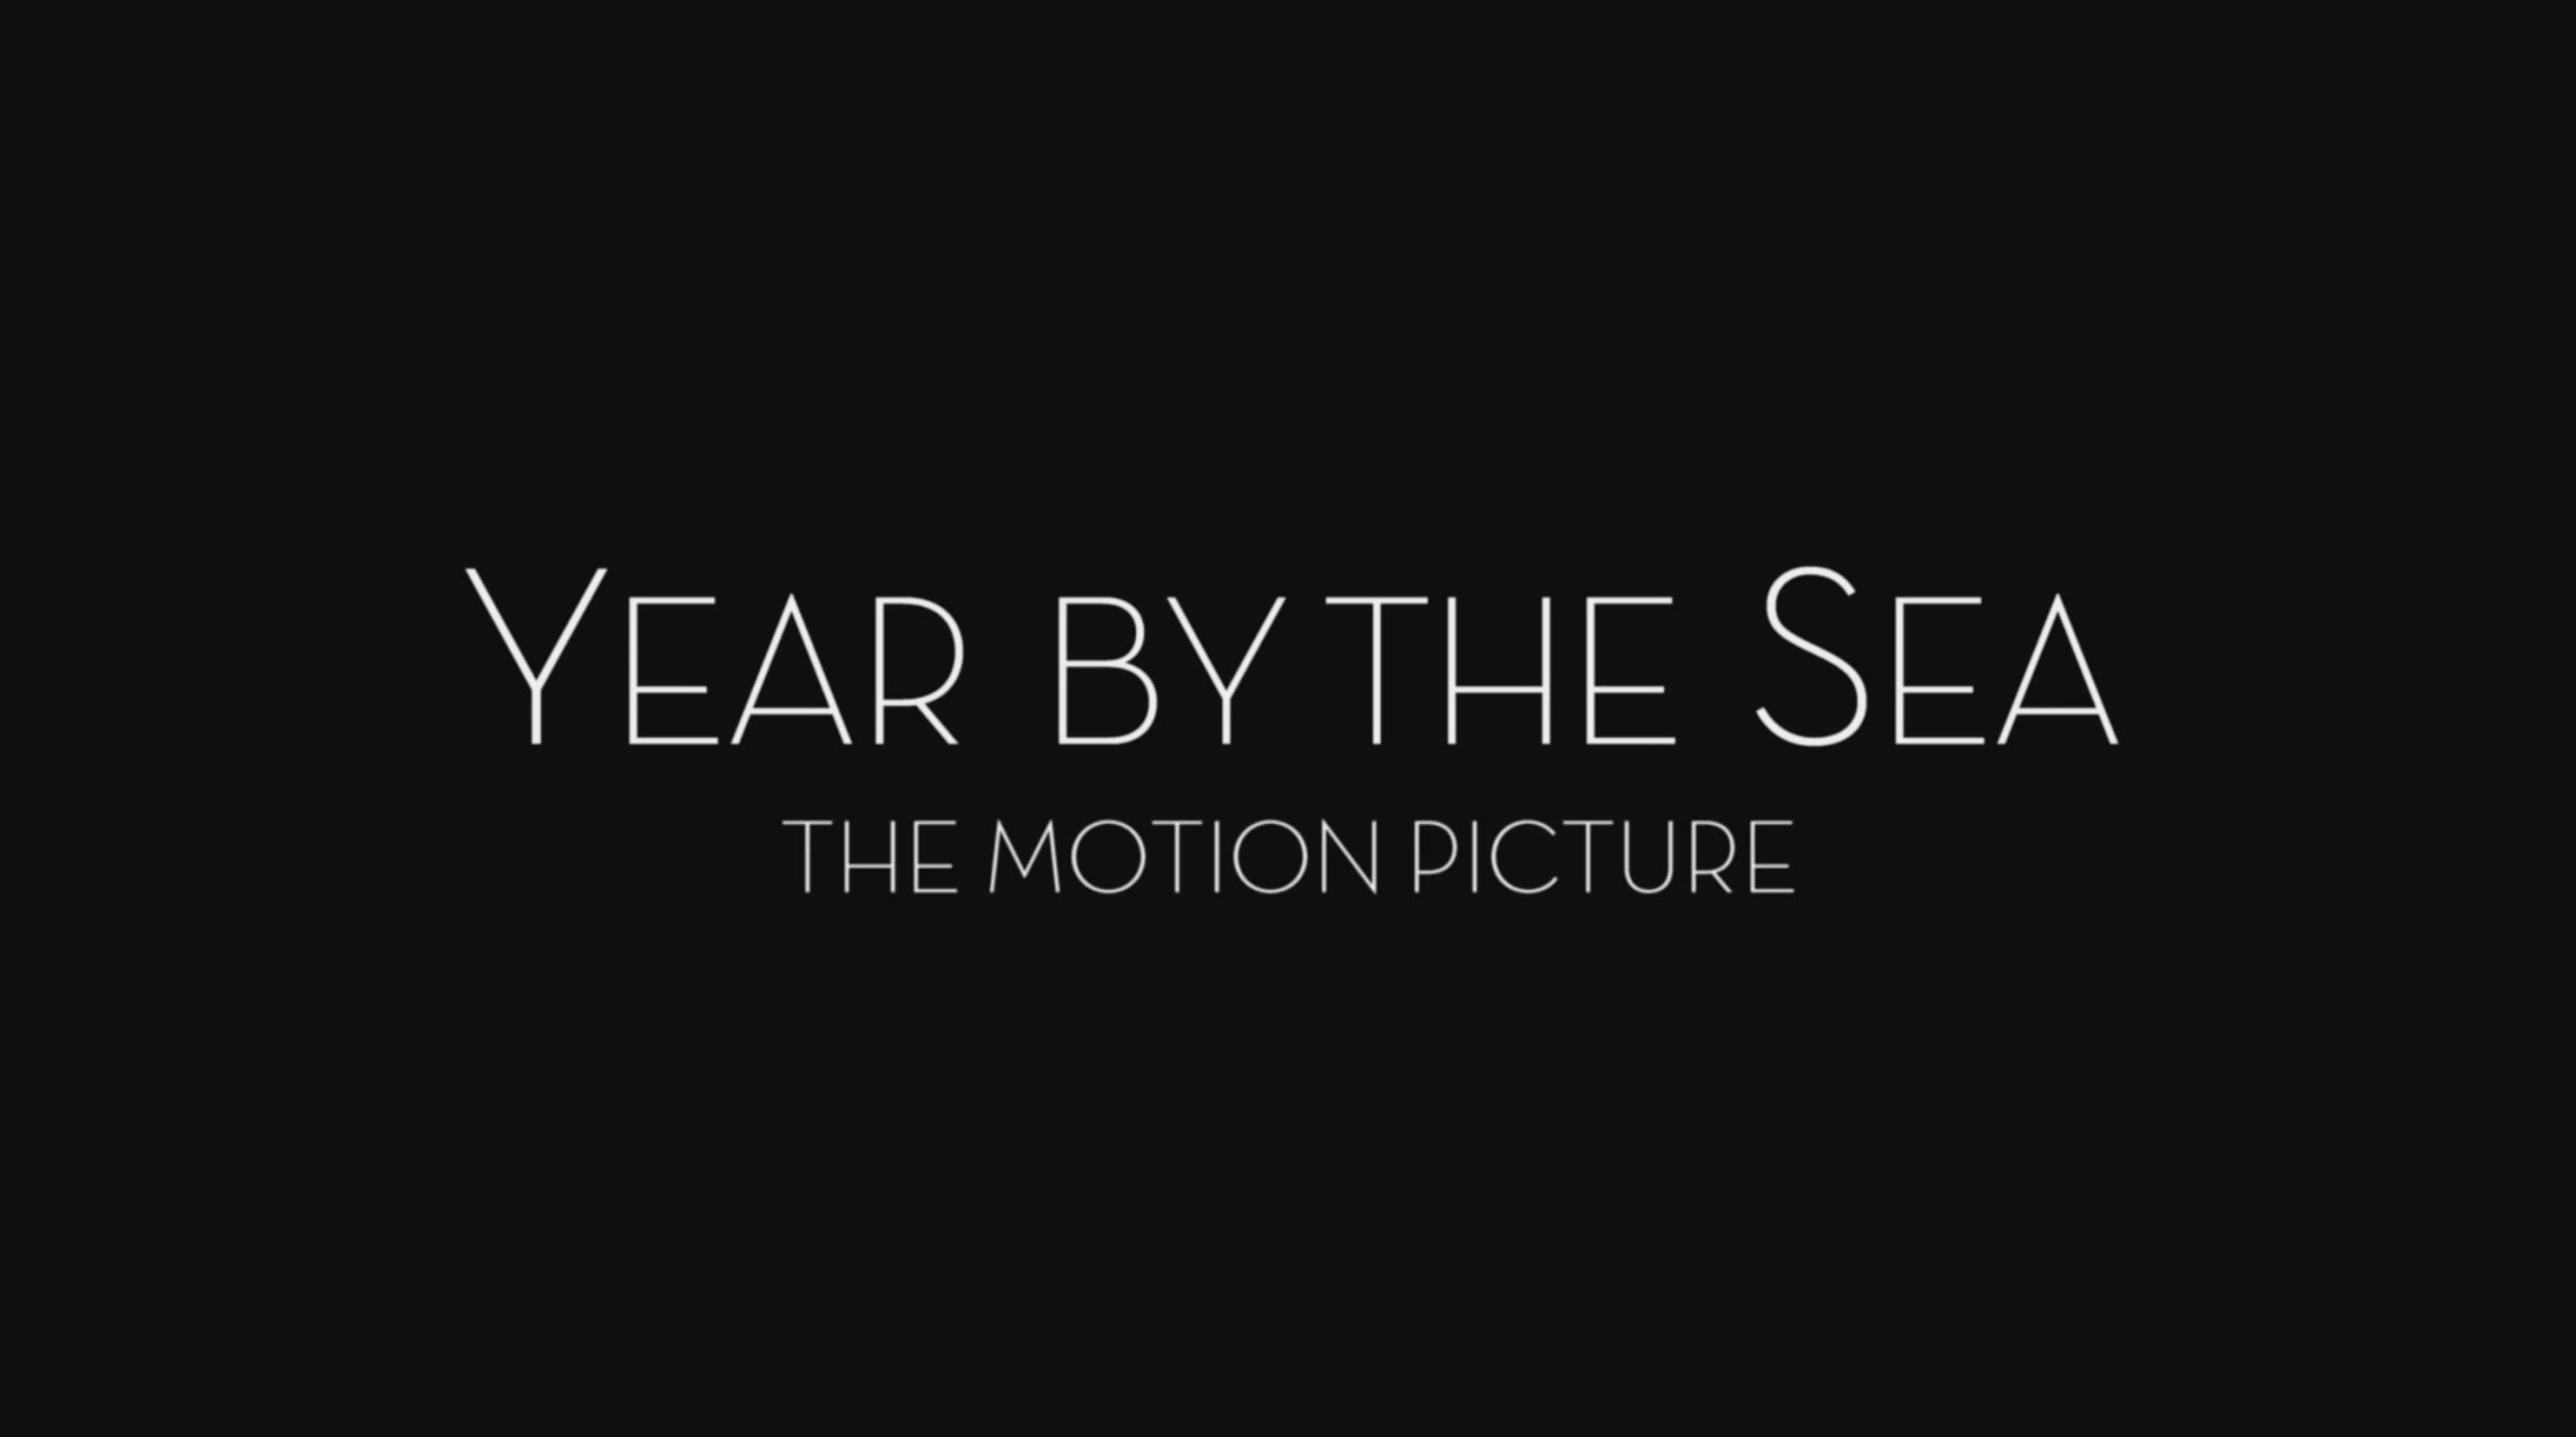 YEAR BY THE SEA — Sizzle